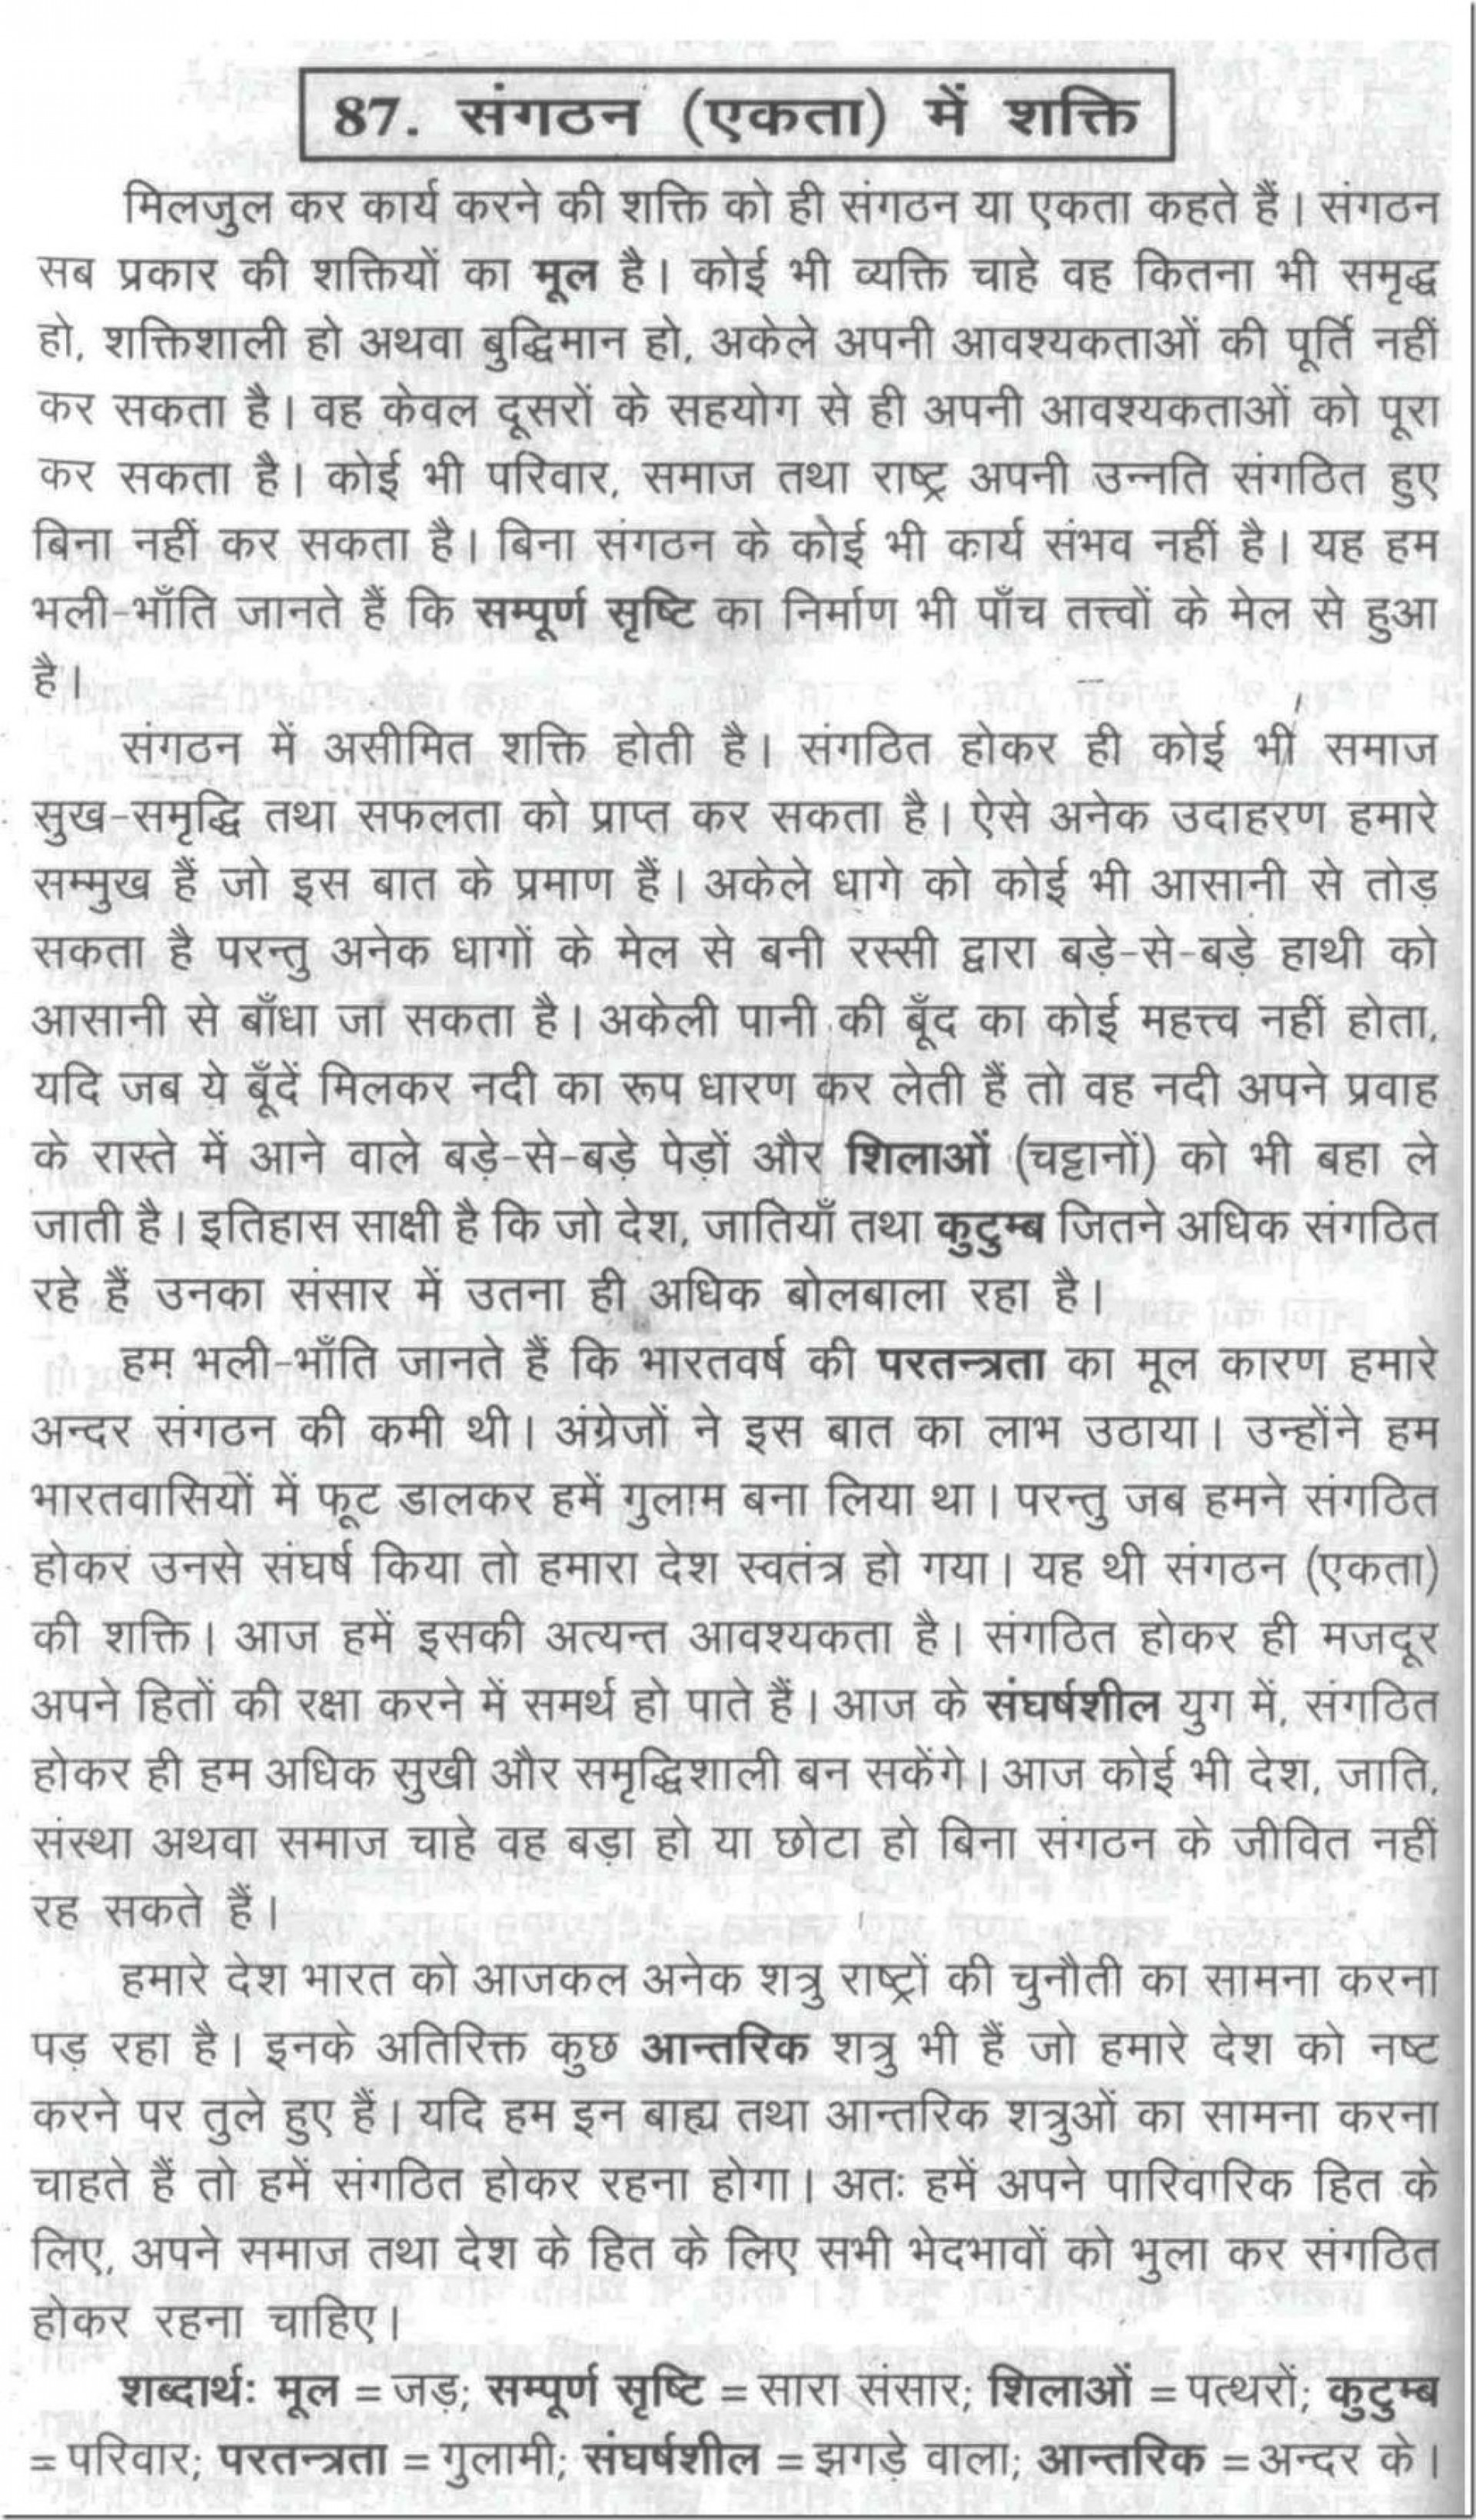 005 Essay On Class Unity Is Strength In Hindi I Cant Write My Personal 100087 Common App College Help 1048x1789 Fascinating Importance Of Diversity National 1920